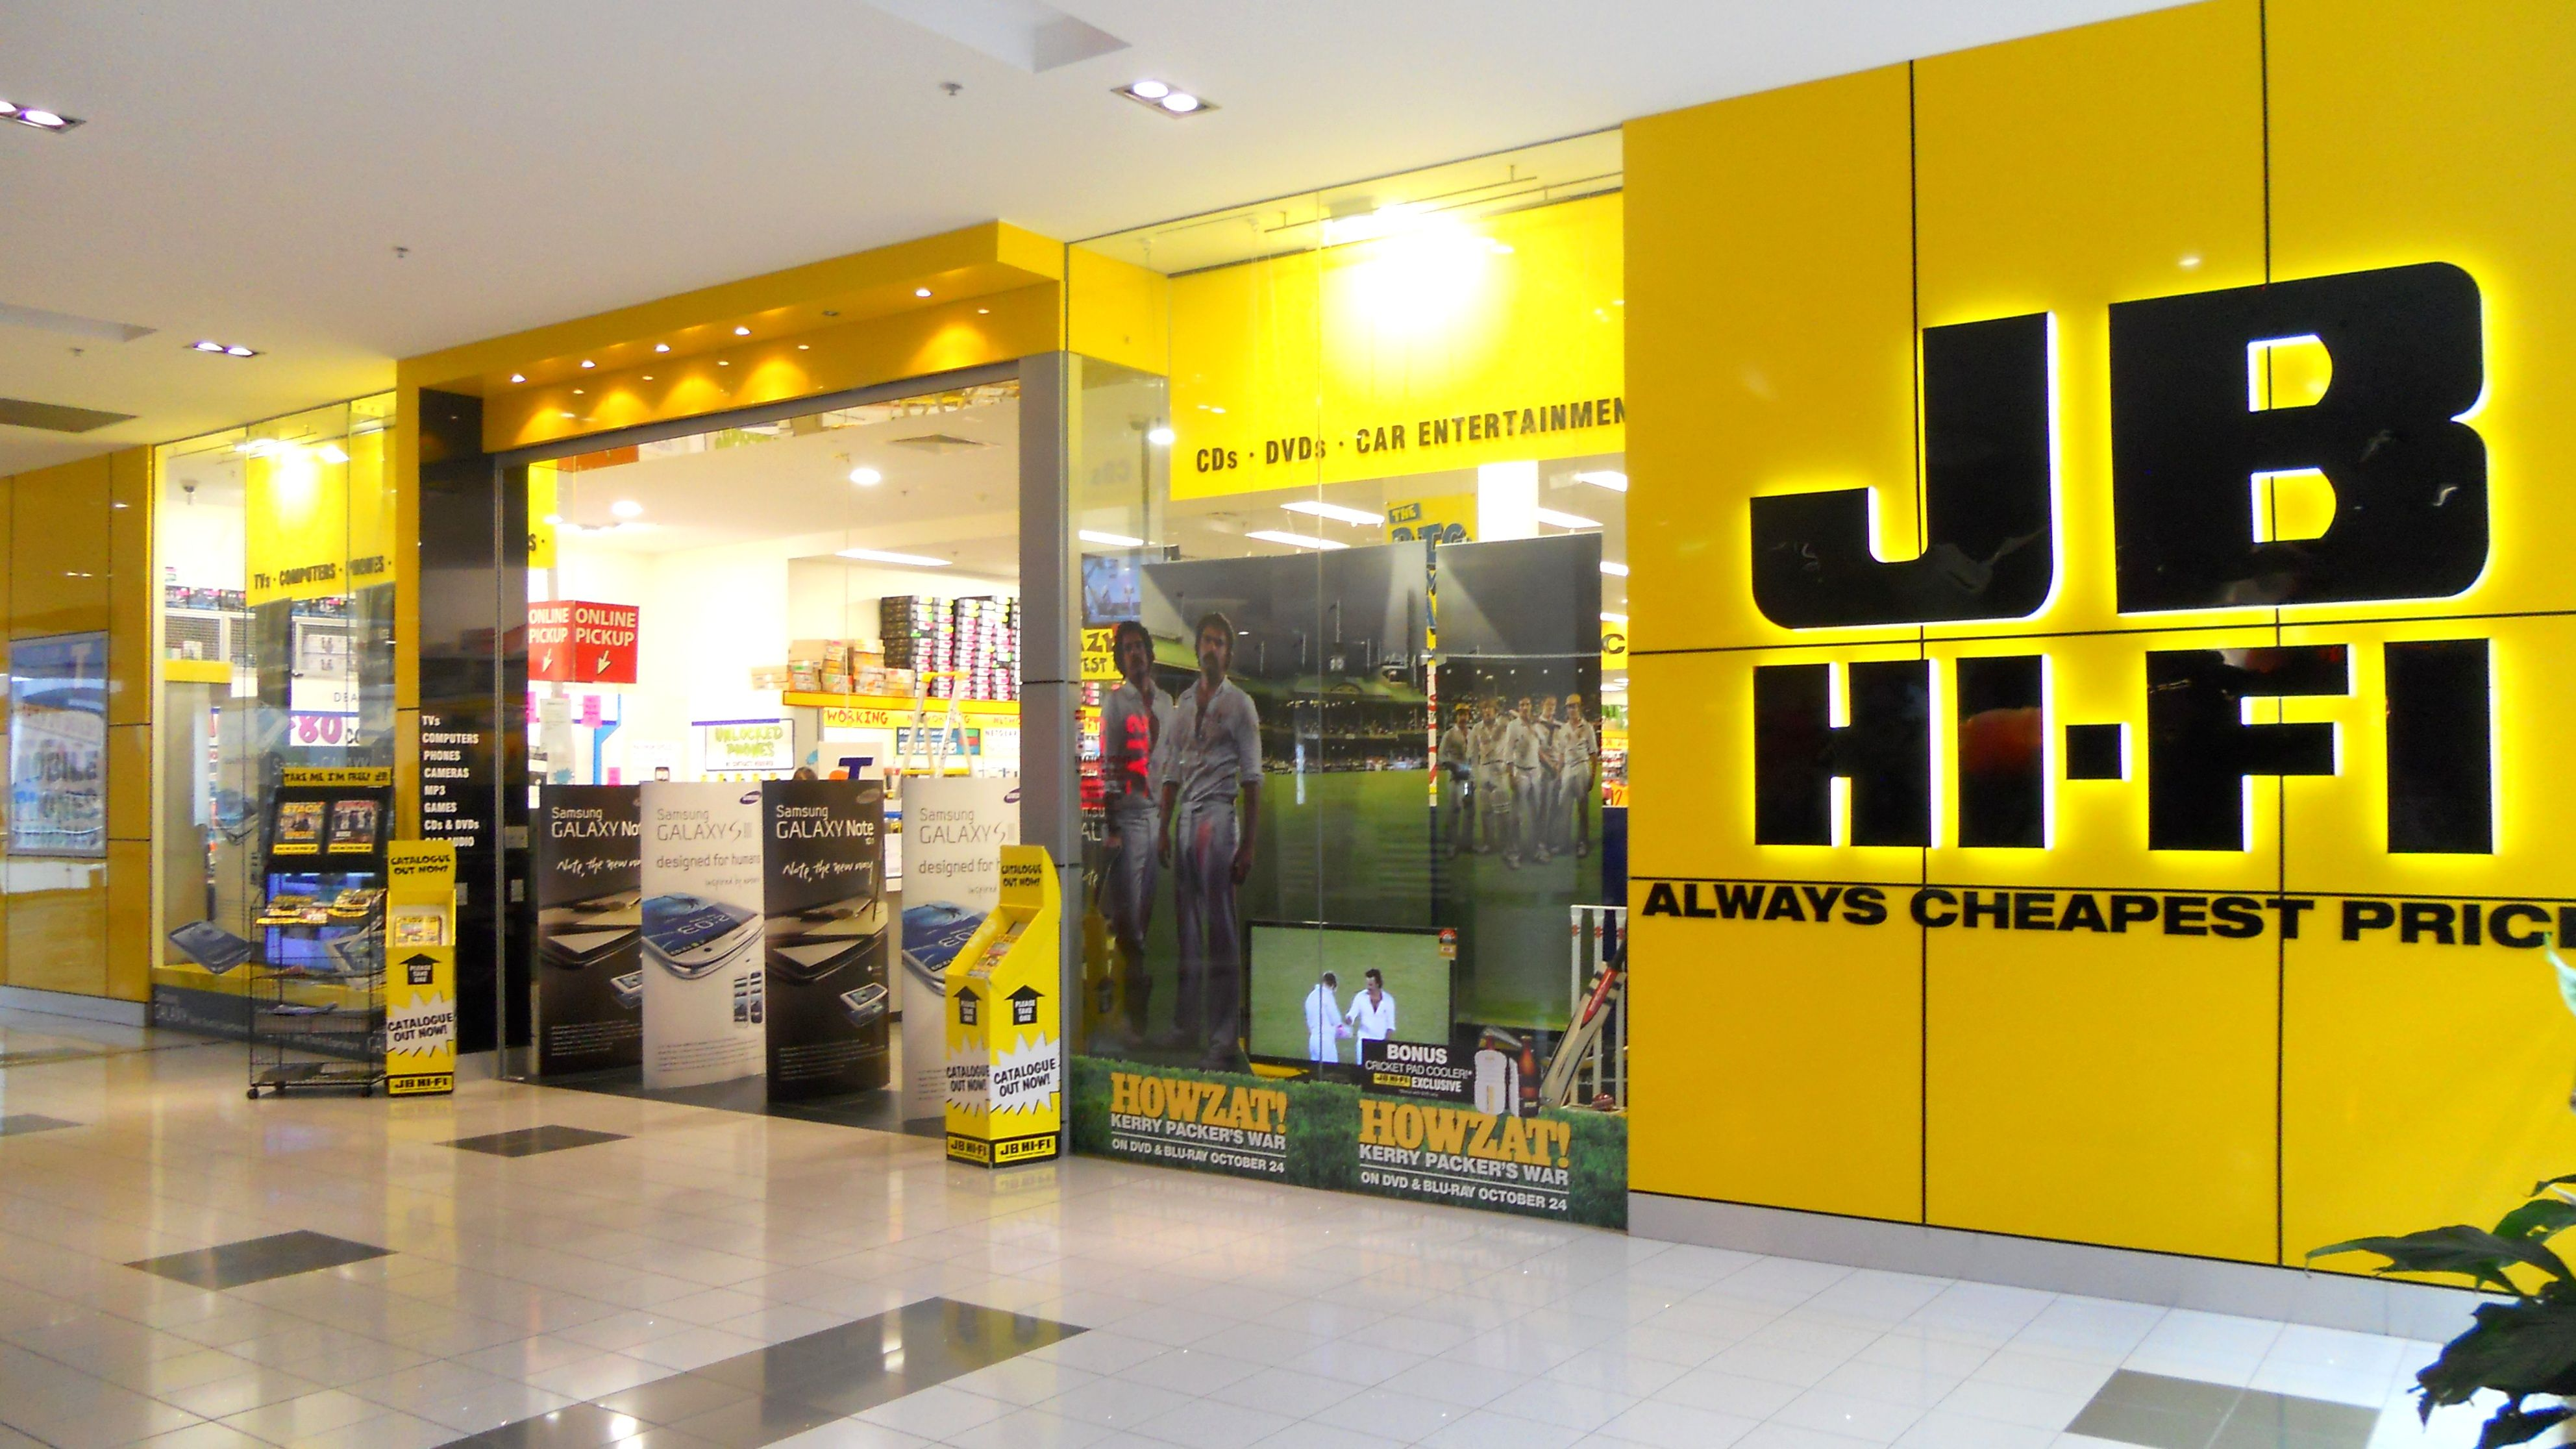 Jb Hi Fi Lighting This Is The Front Of A Jb Hi Fi Store The Use Of The Colour